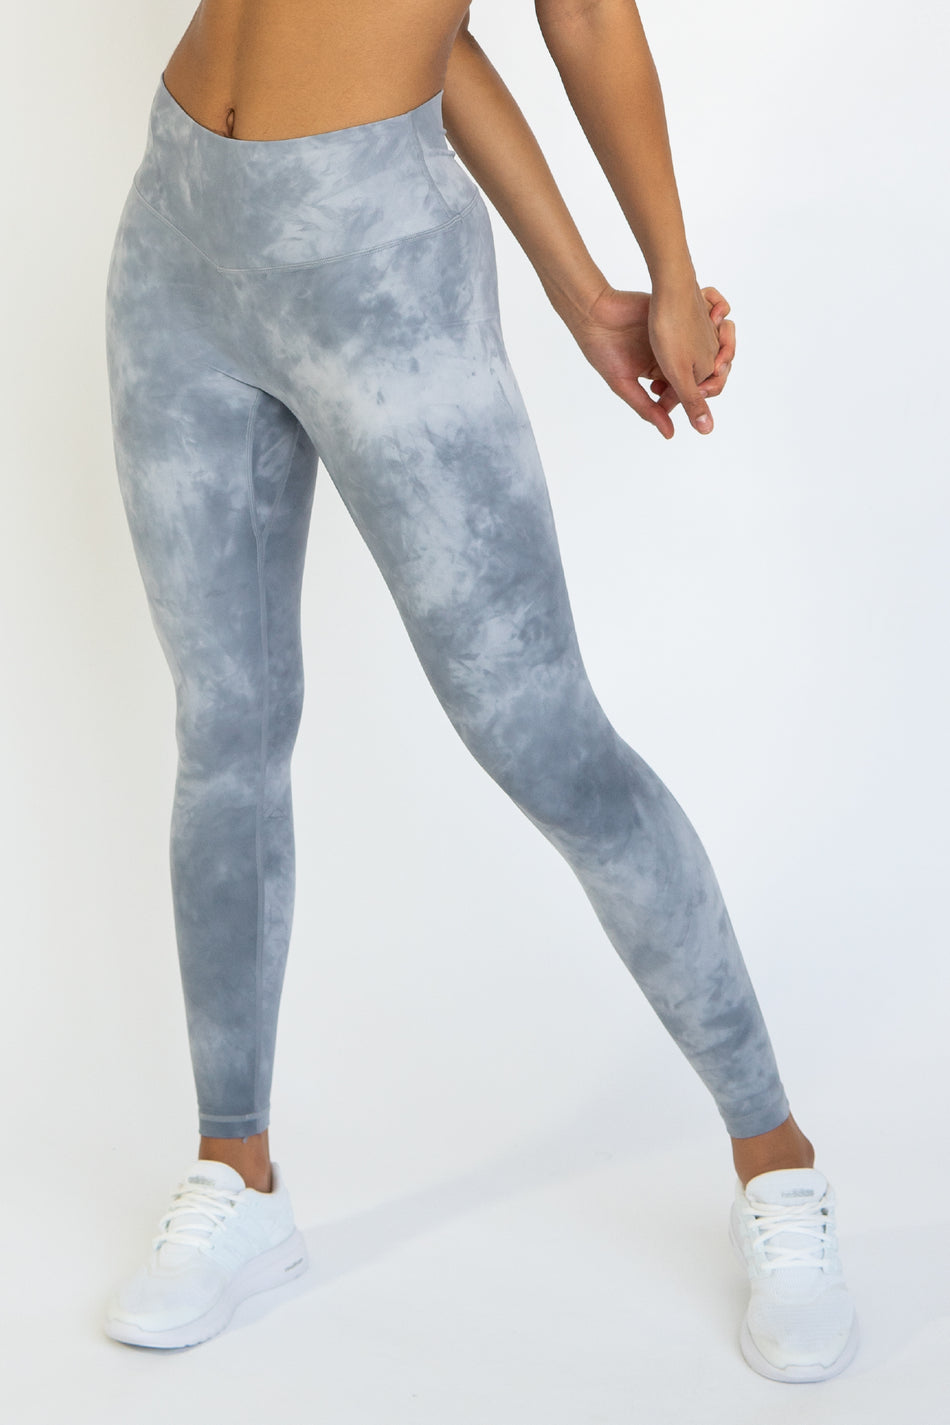 TieDye Leggings - Blue/Silver - WearWolf Clothing Ltd